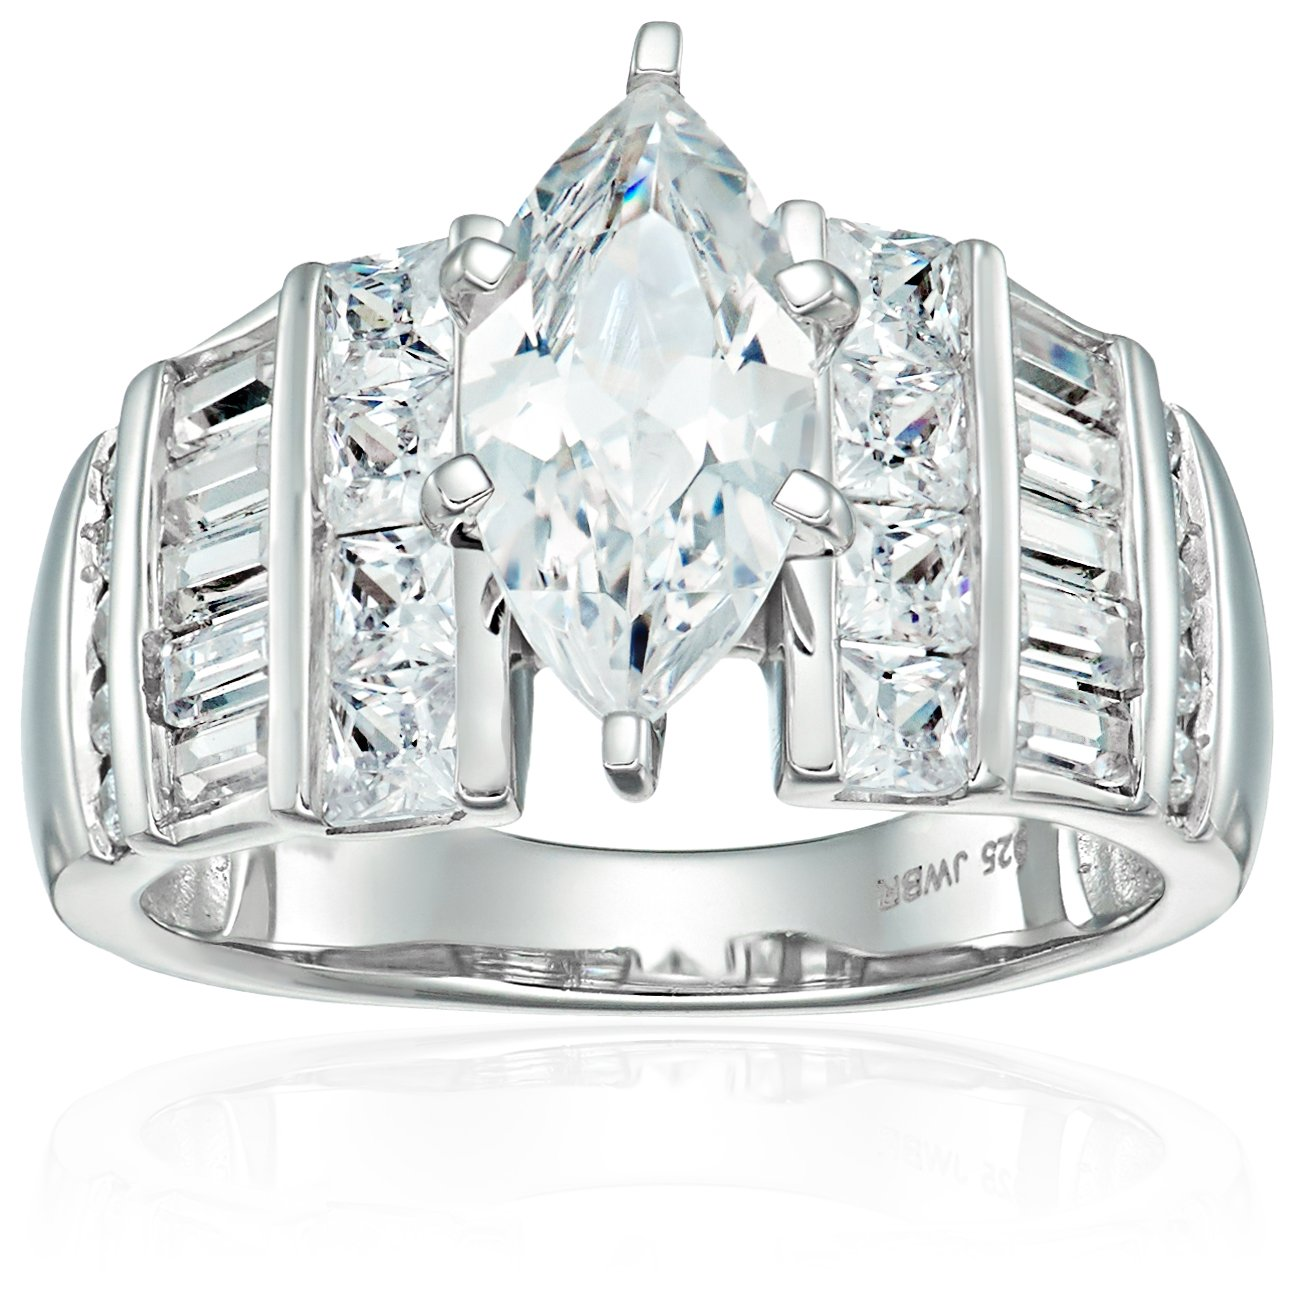 Sterling Silver Cubic Zirconia Marquise Cut Engagement Ring, Size 8 by Amazon Collection (Image #1)